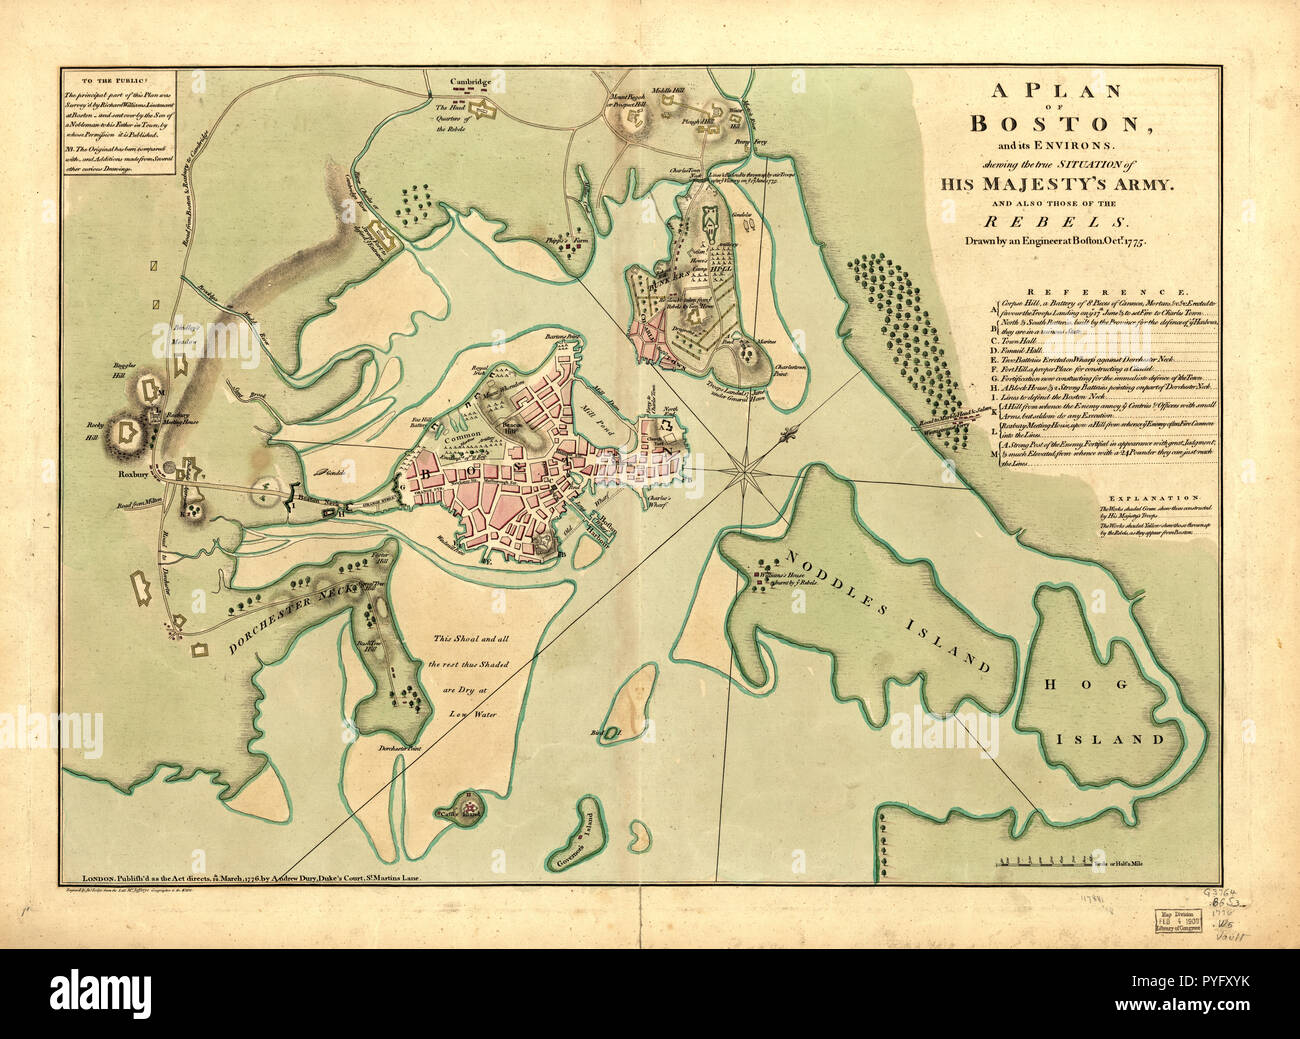 1776 map of boston Map Of Boston 1776 High Resolution Stock Photography And Images 1776 map of boston